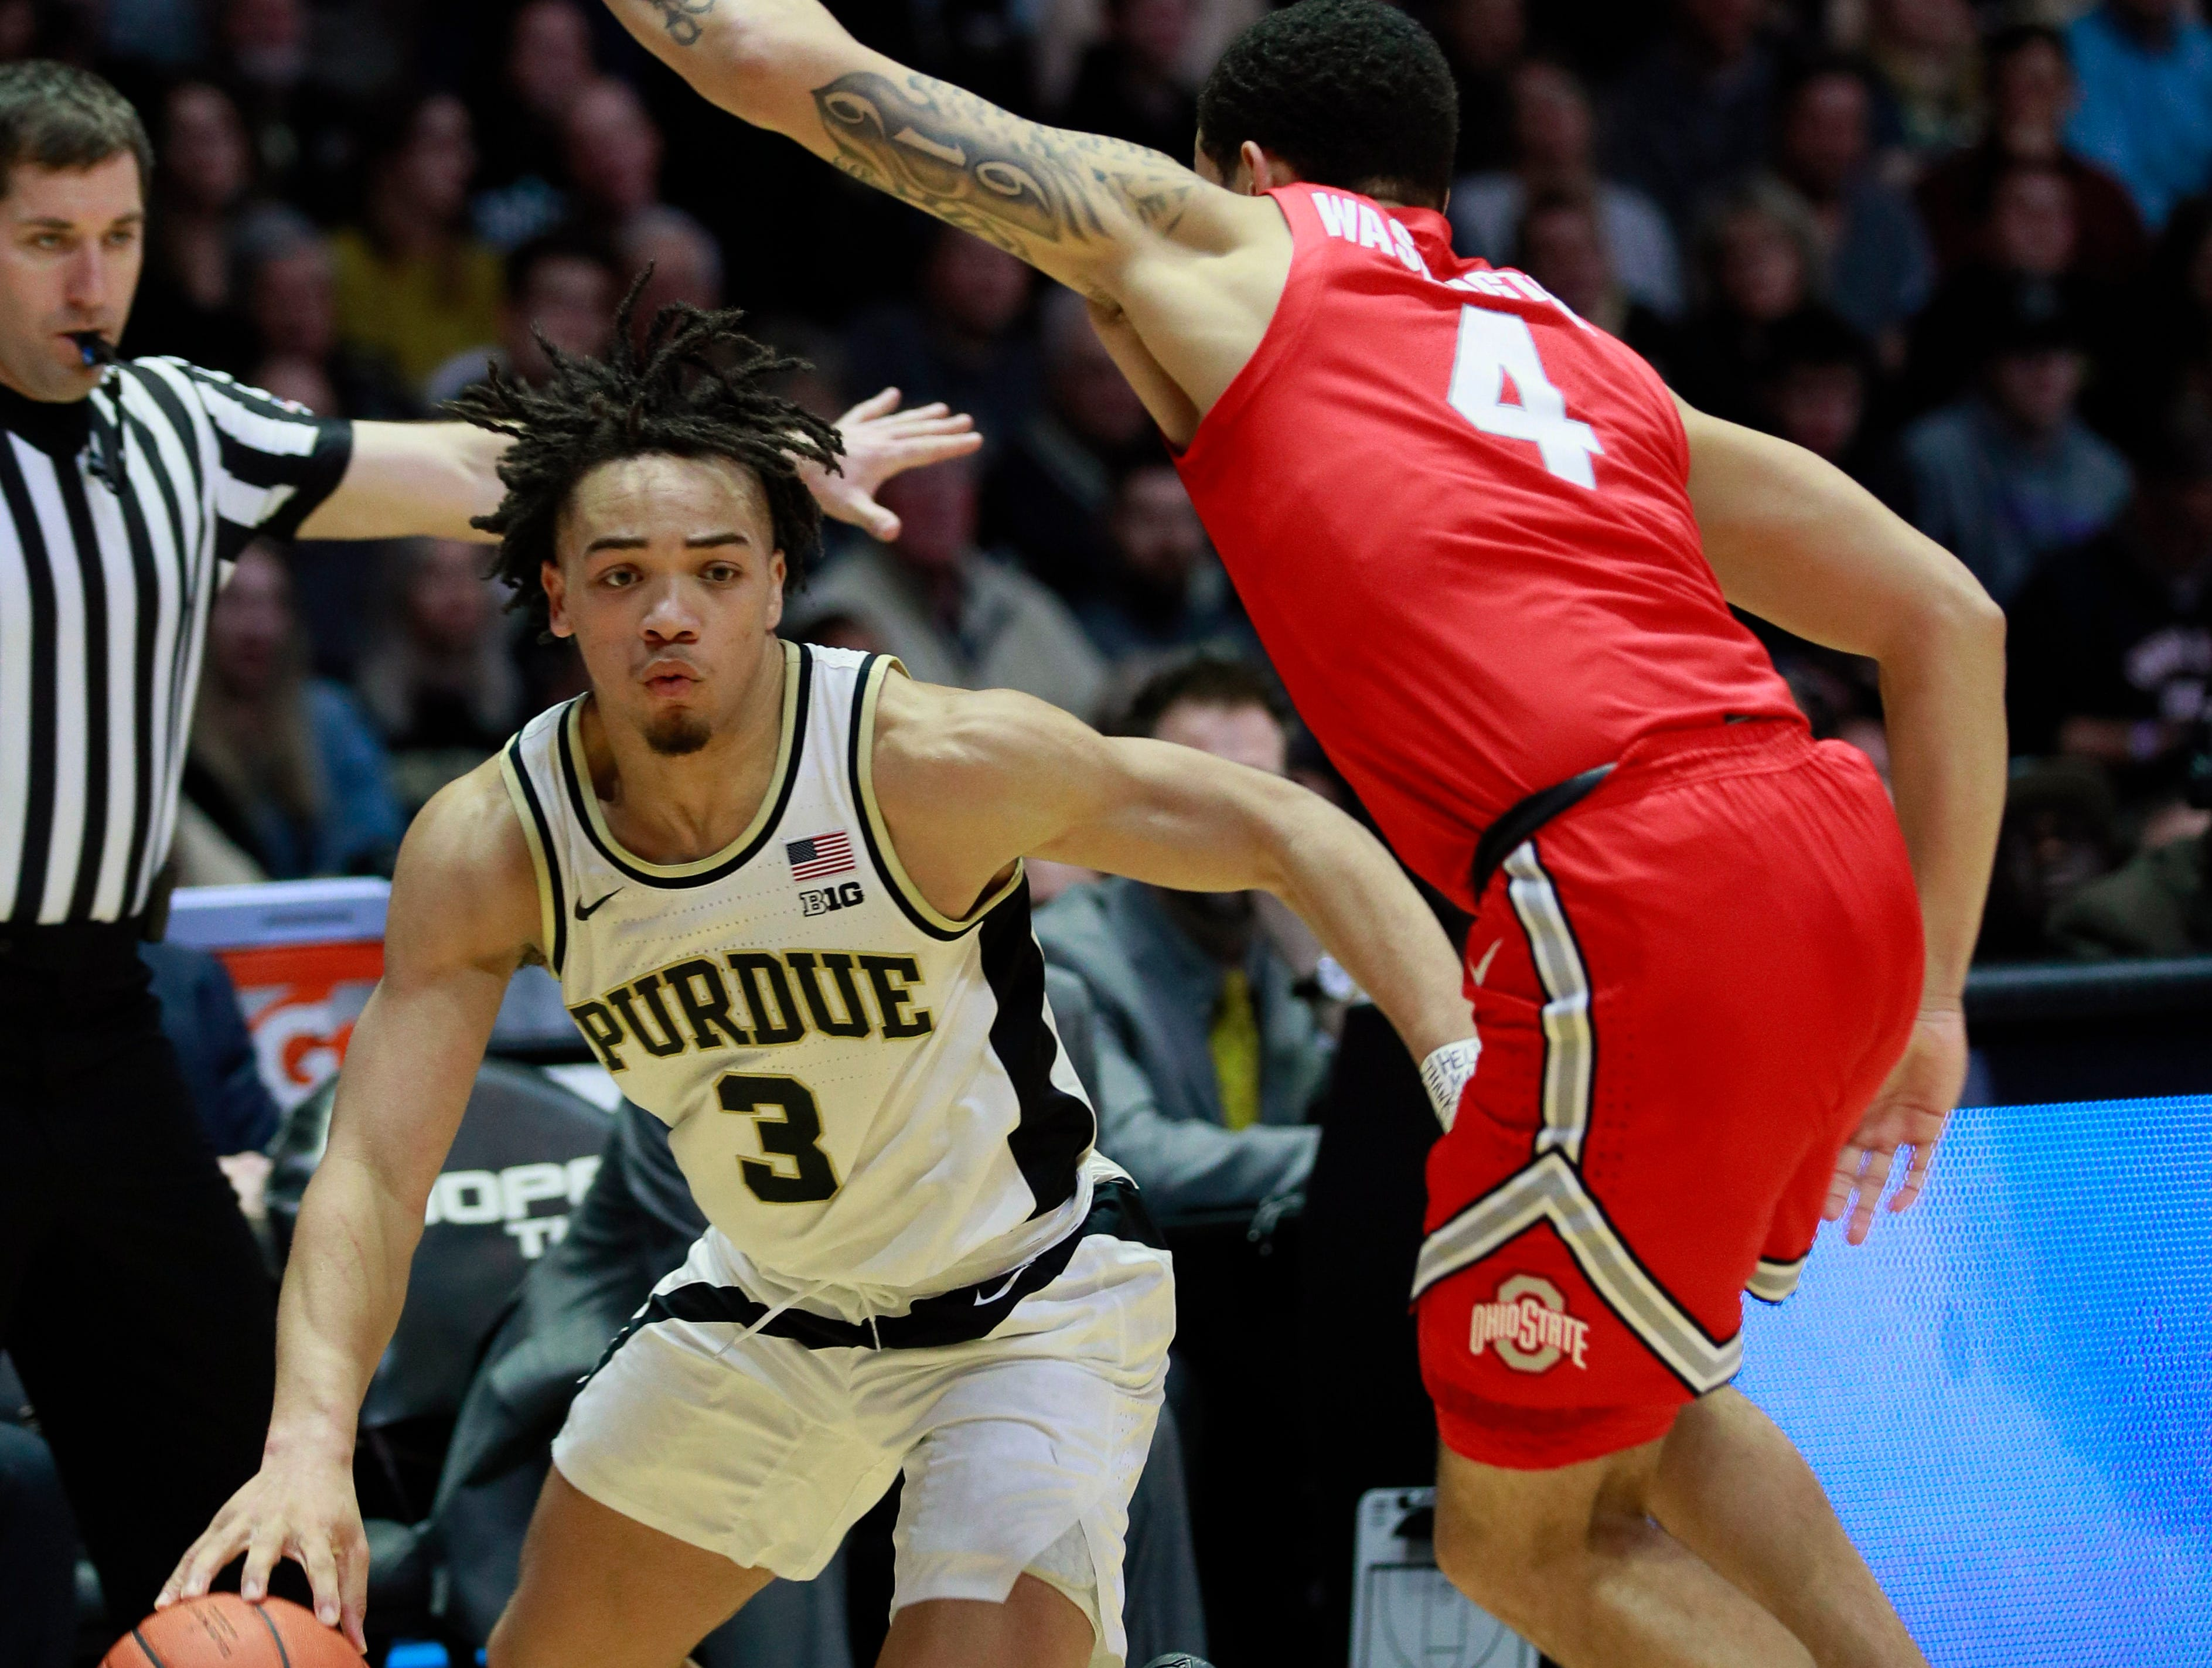 1. Purdue (22-7, 15-3) – The Boilermakers already had the easiest road among the contenders to the Big Ten title and now they're in the driver's seat after Michigan State's loss at Indiana. The Boilermakers have won five straight and hit the road for the final two games at Minnesota and Northwestern. Avoid an upset and Matt Painter and his crew will be outright regular-season champs, something few would have predicted before the season. Last week: 3